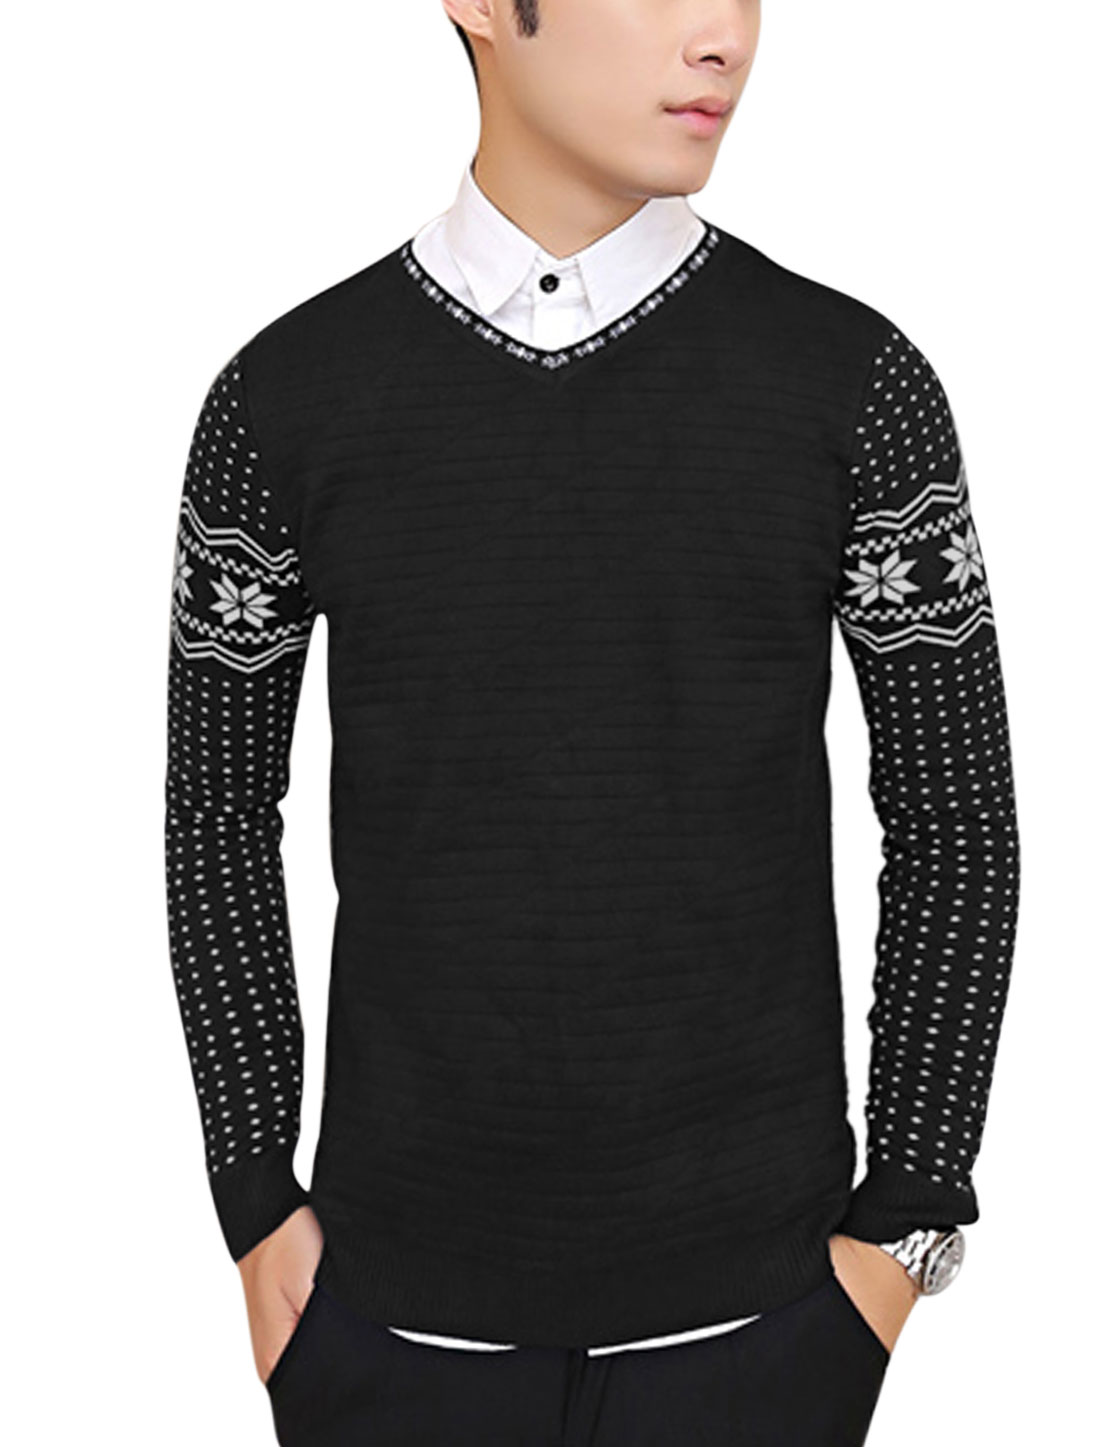 Men V Neck Tiered design Geometric Pattern Casual Knit Shirt Black M